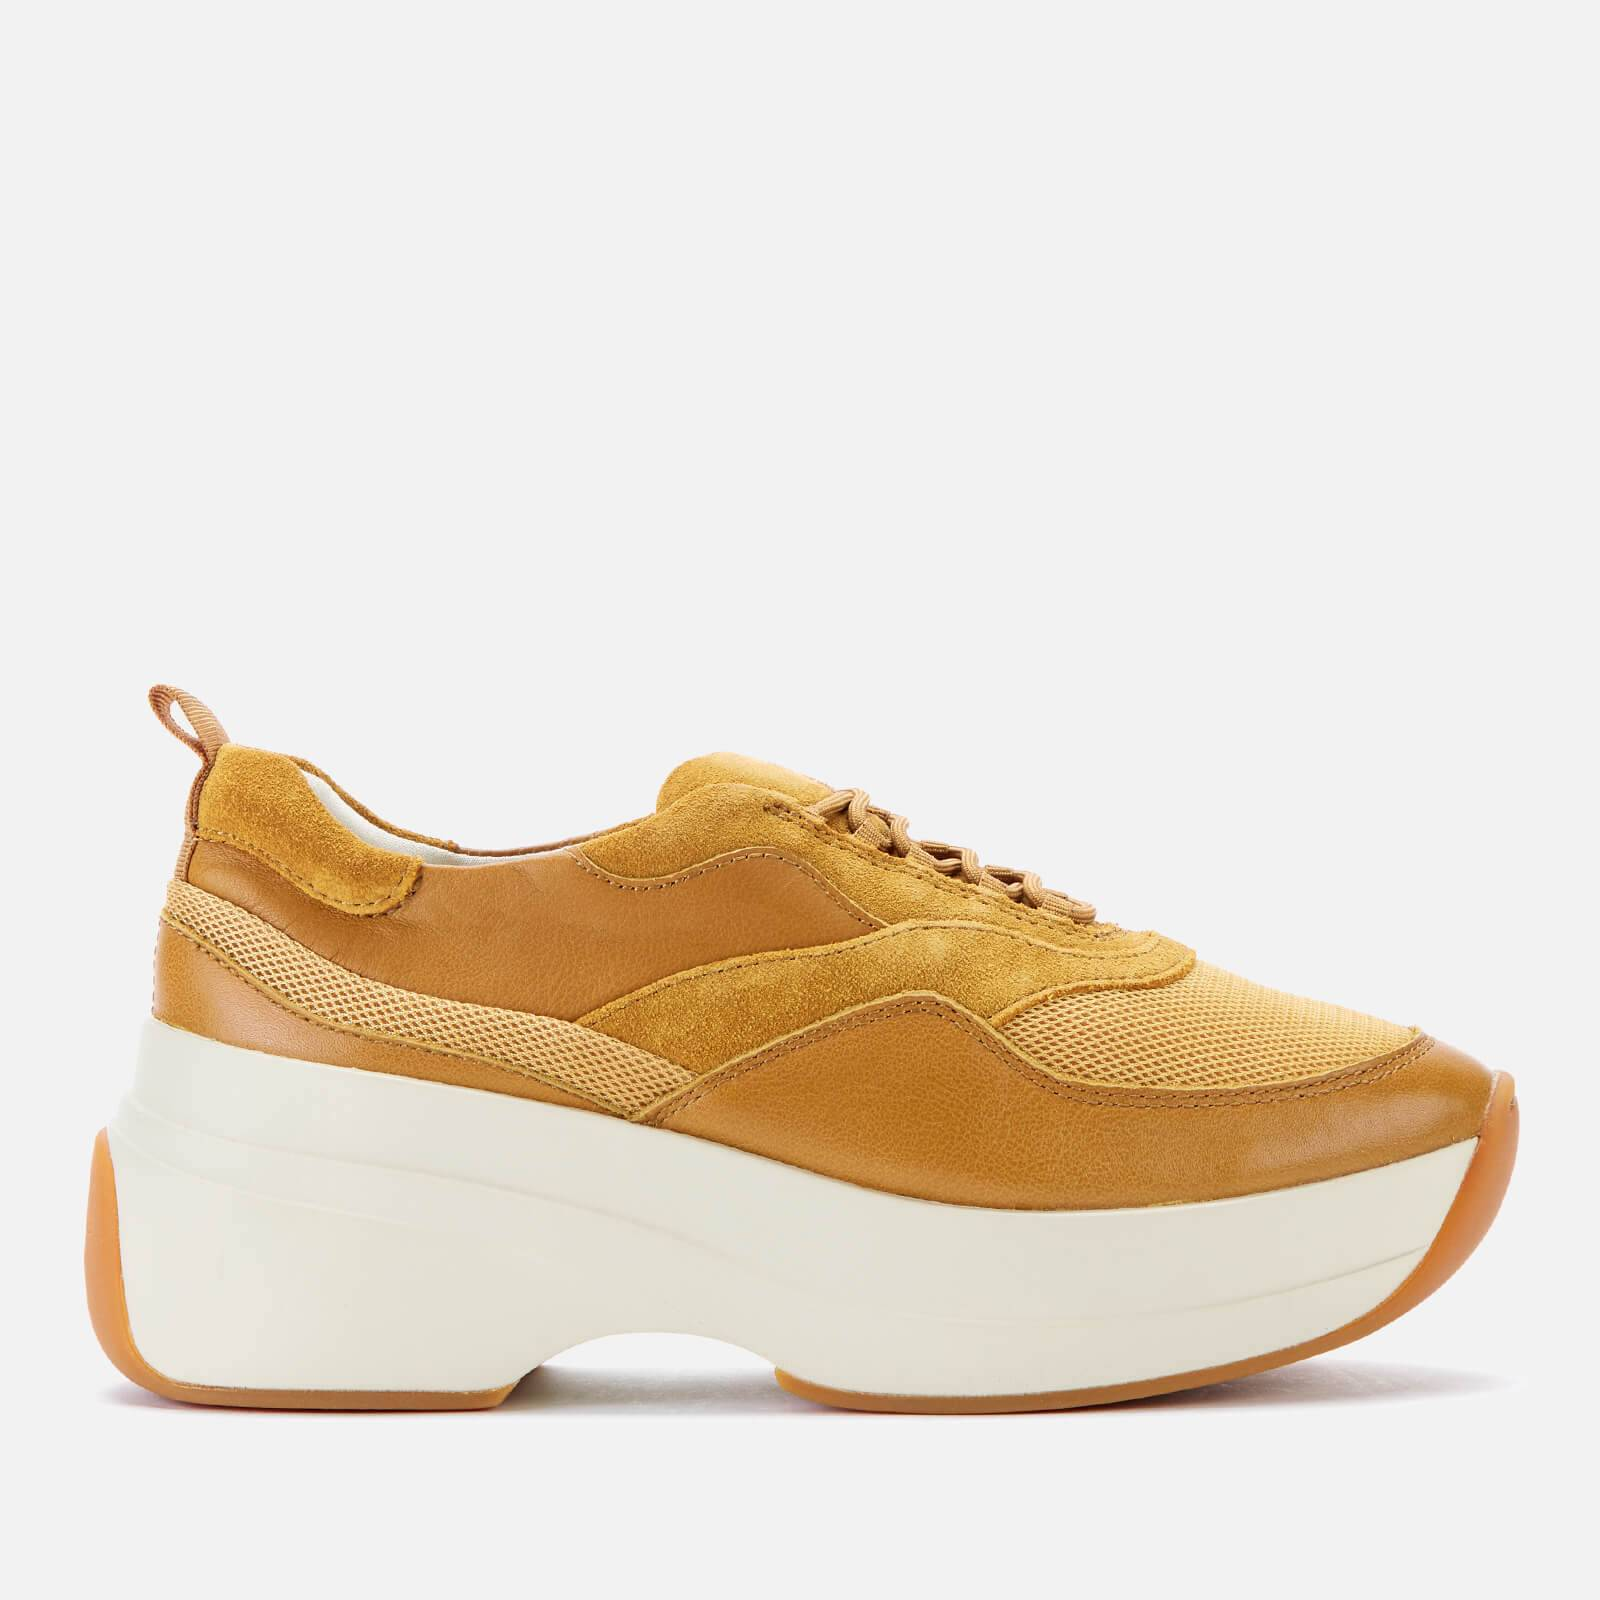 Vagabond Women's Sprint 2.0 Chunky Trainers - Golden Oat - UK 7 - Yellow